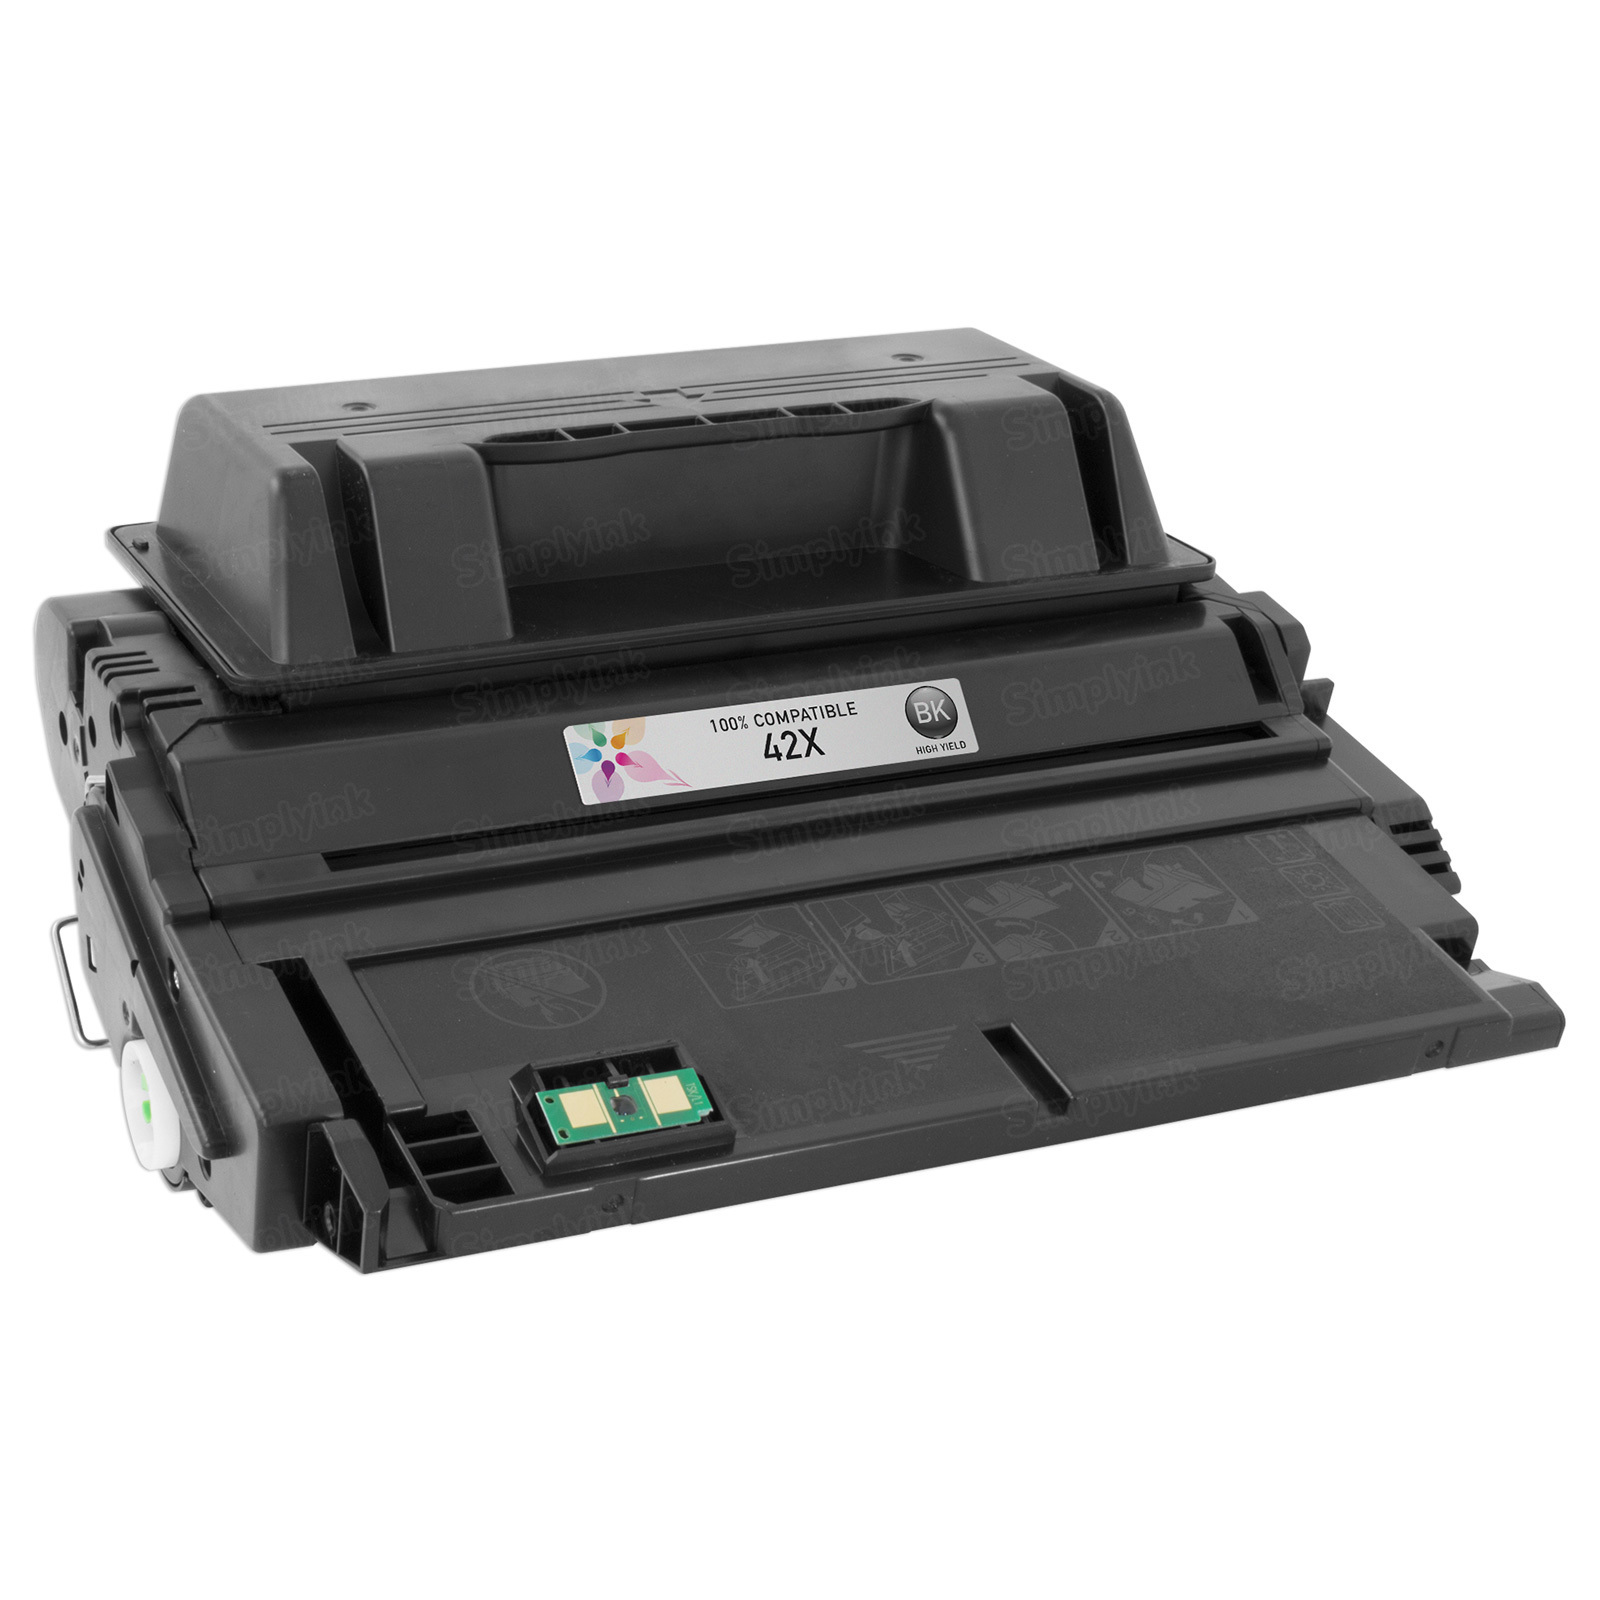 Replacement HY Black Toner for HP 42X